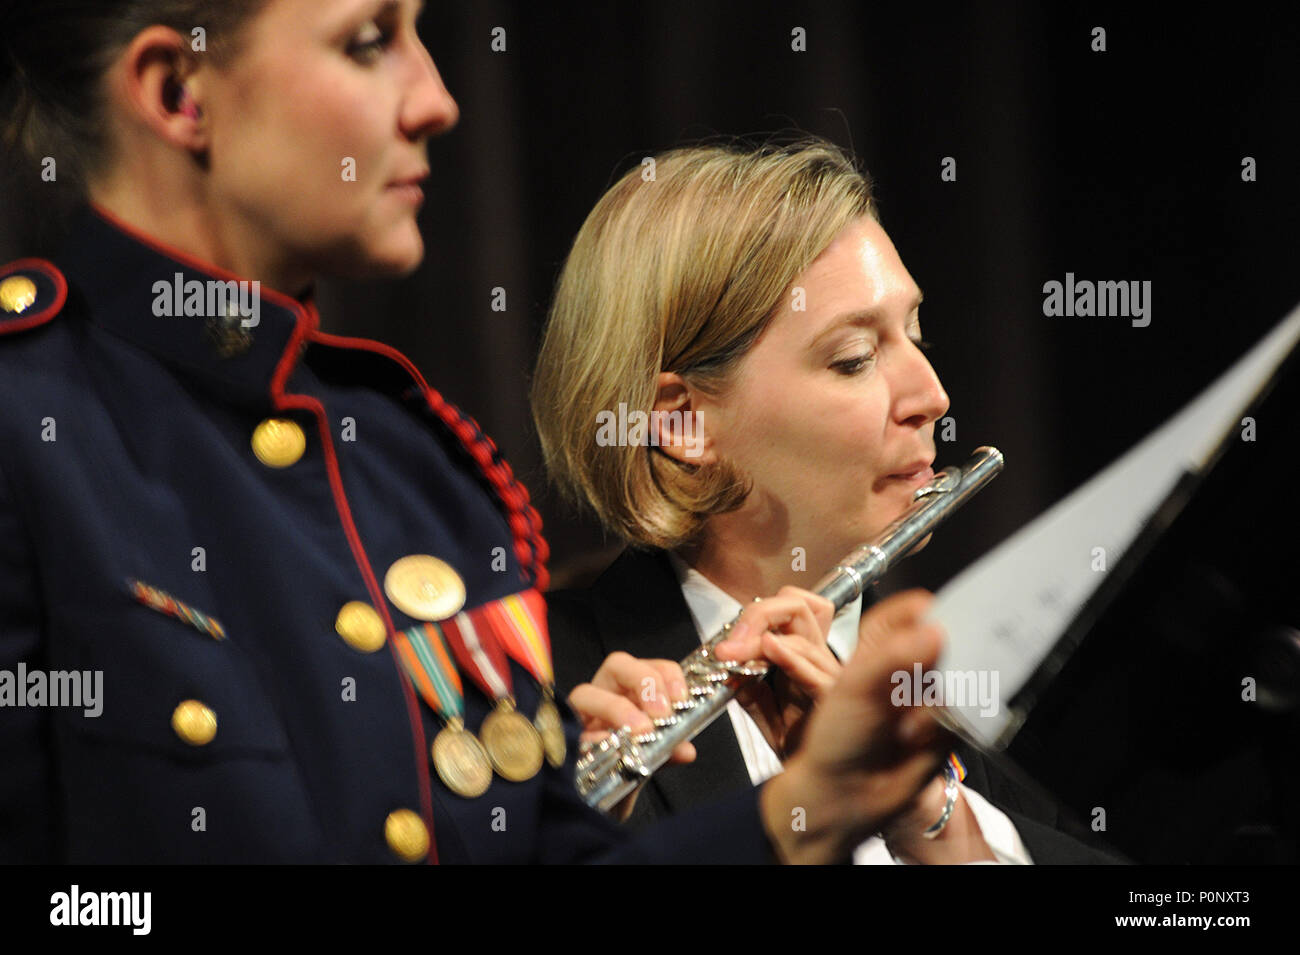 Flute Player In High School Stock Photos Flute Player In High